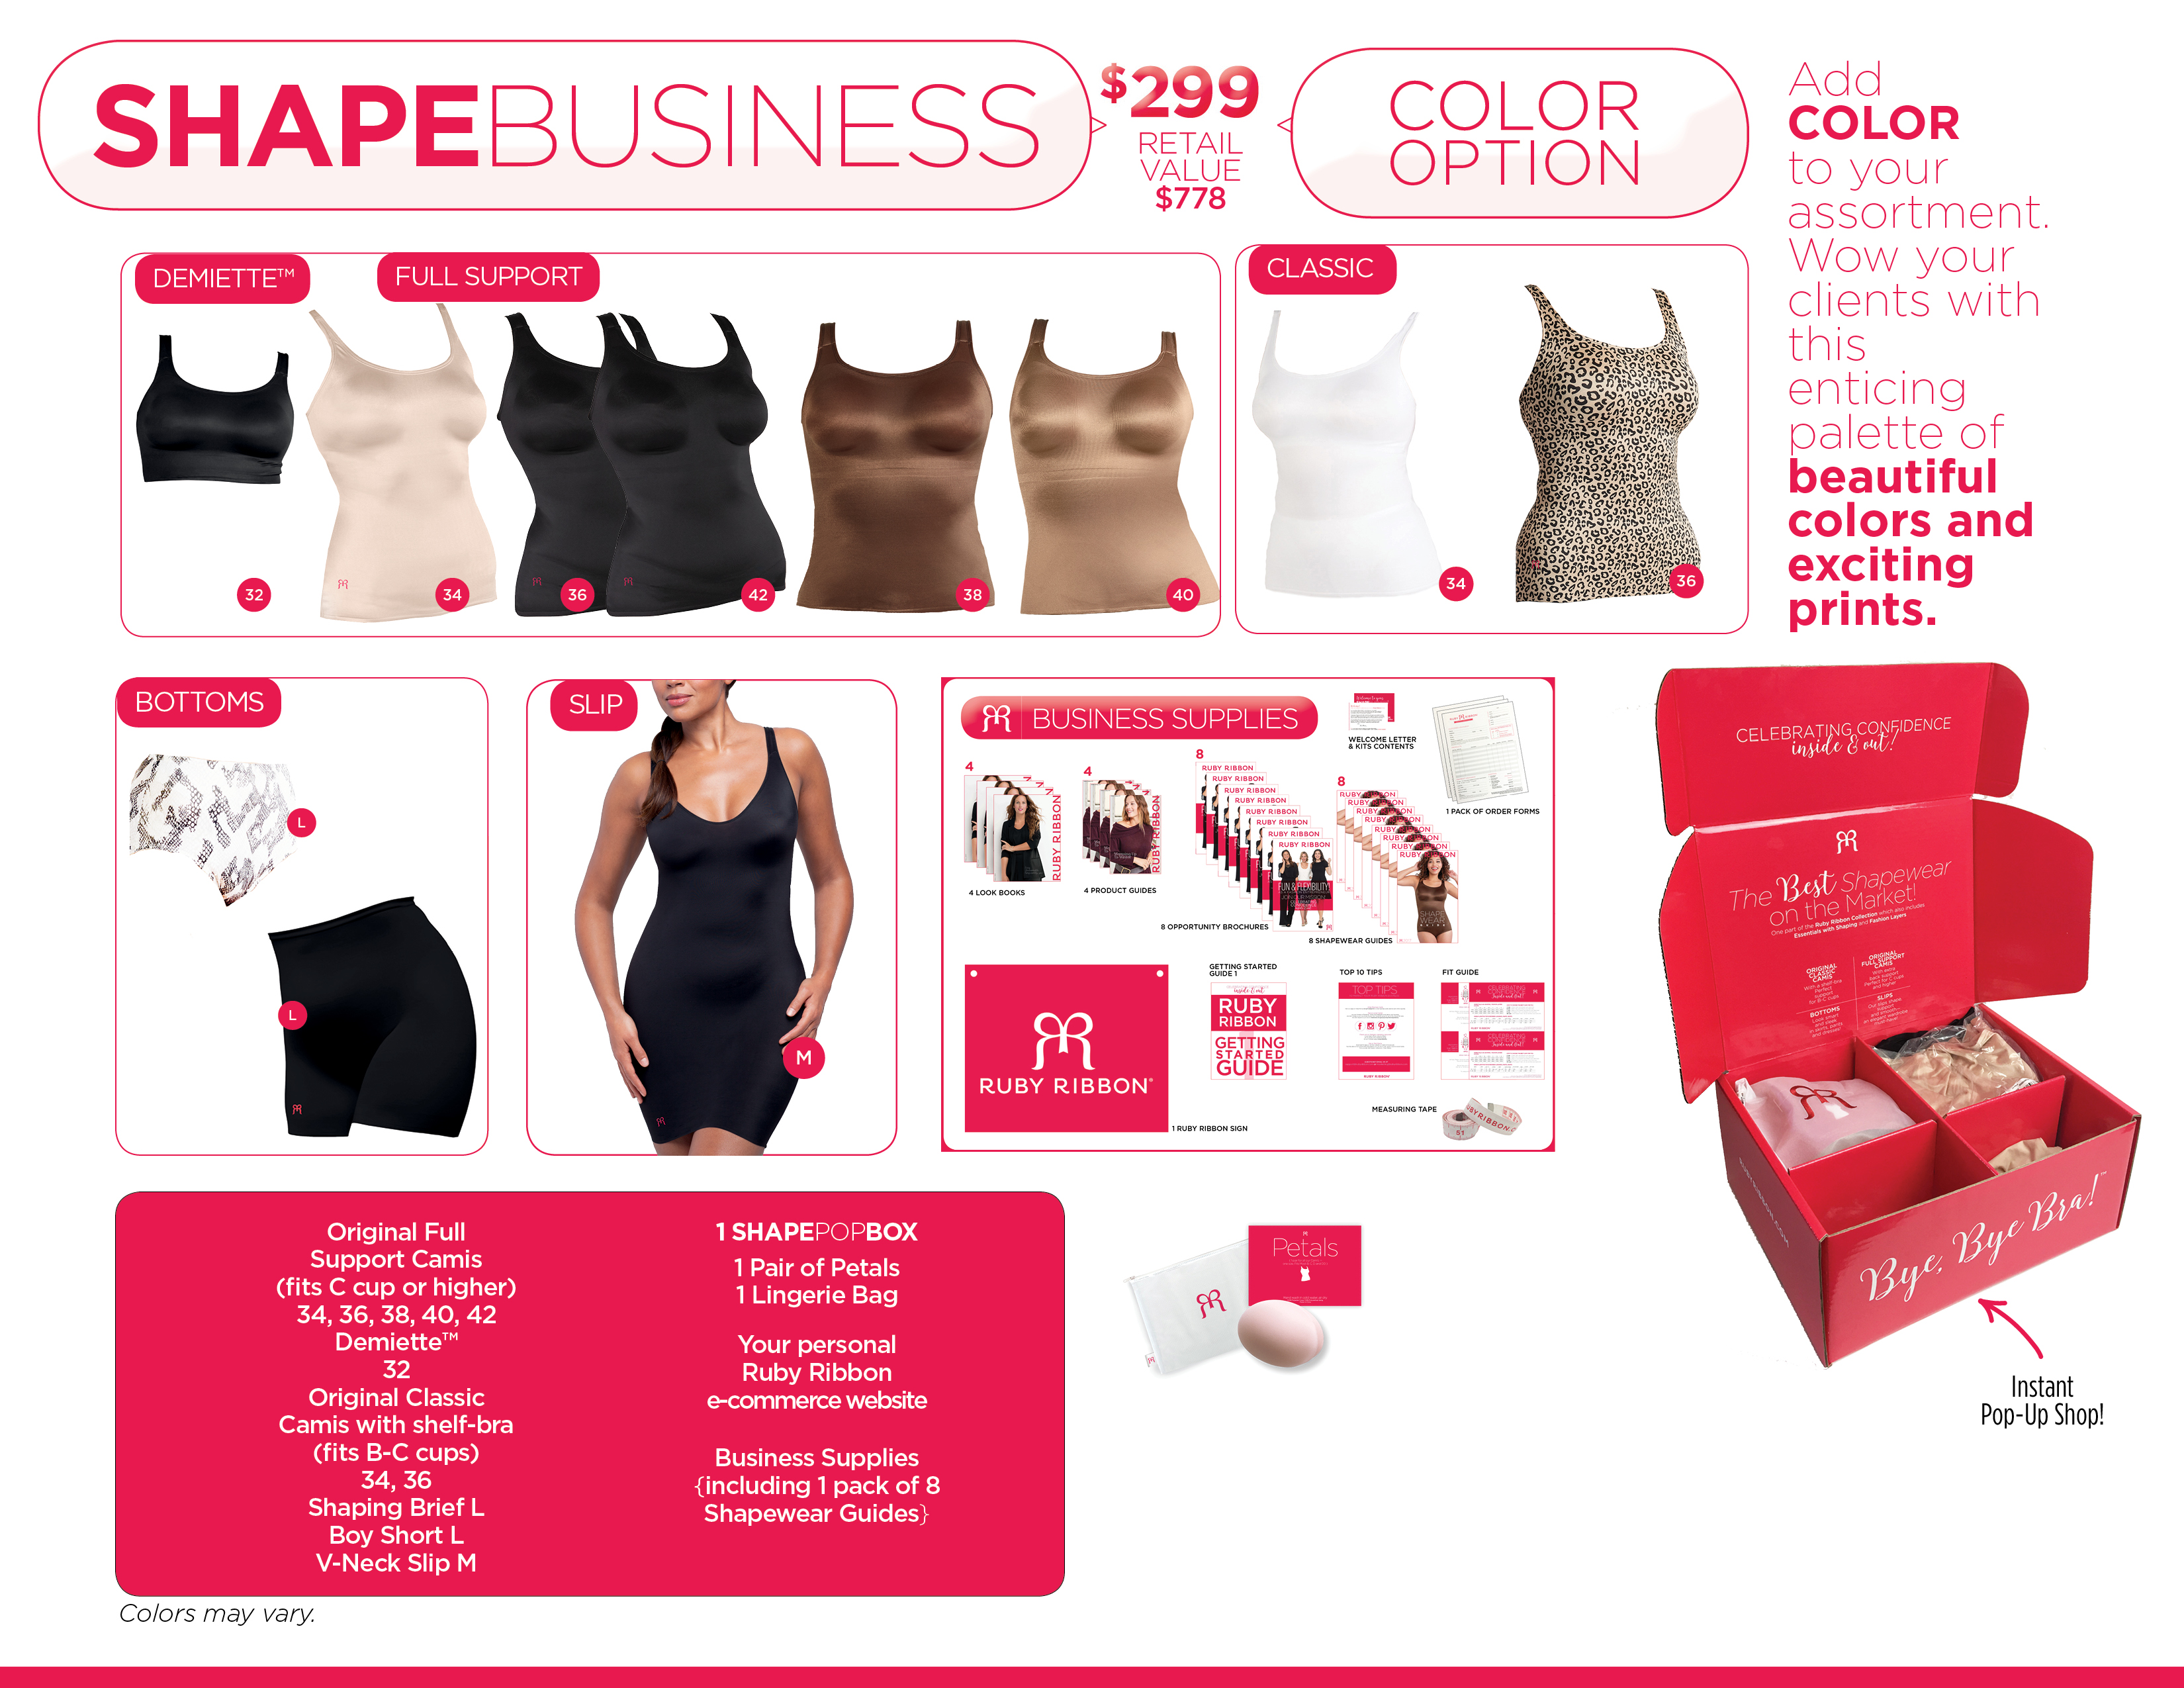 Shape Business Color Option